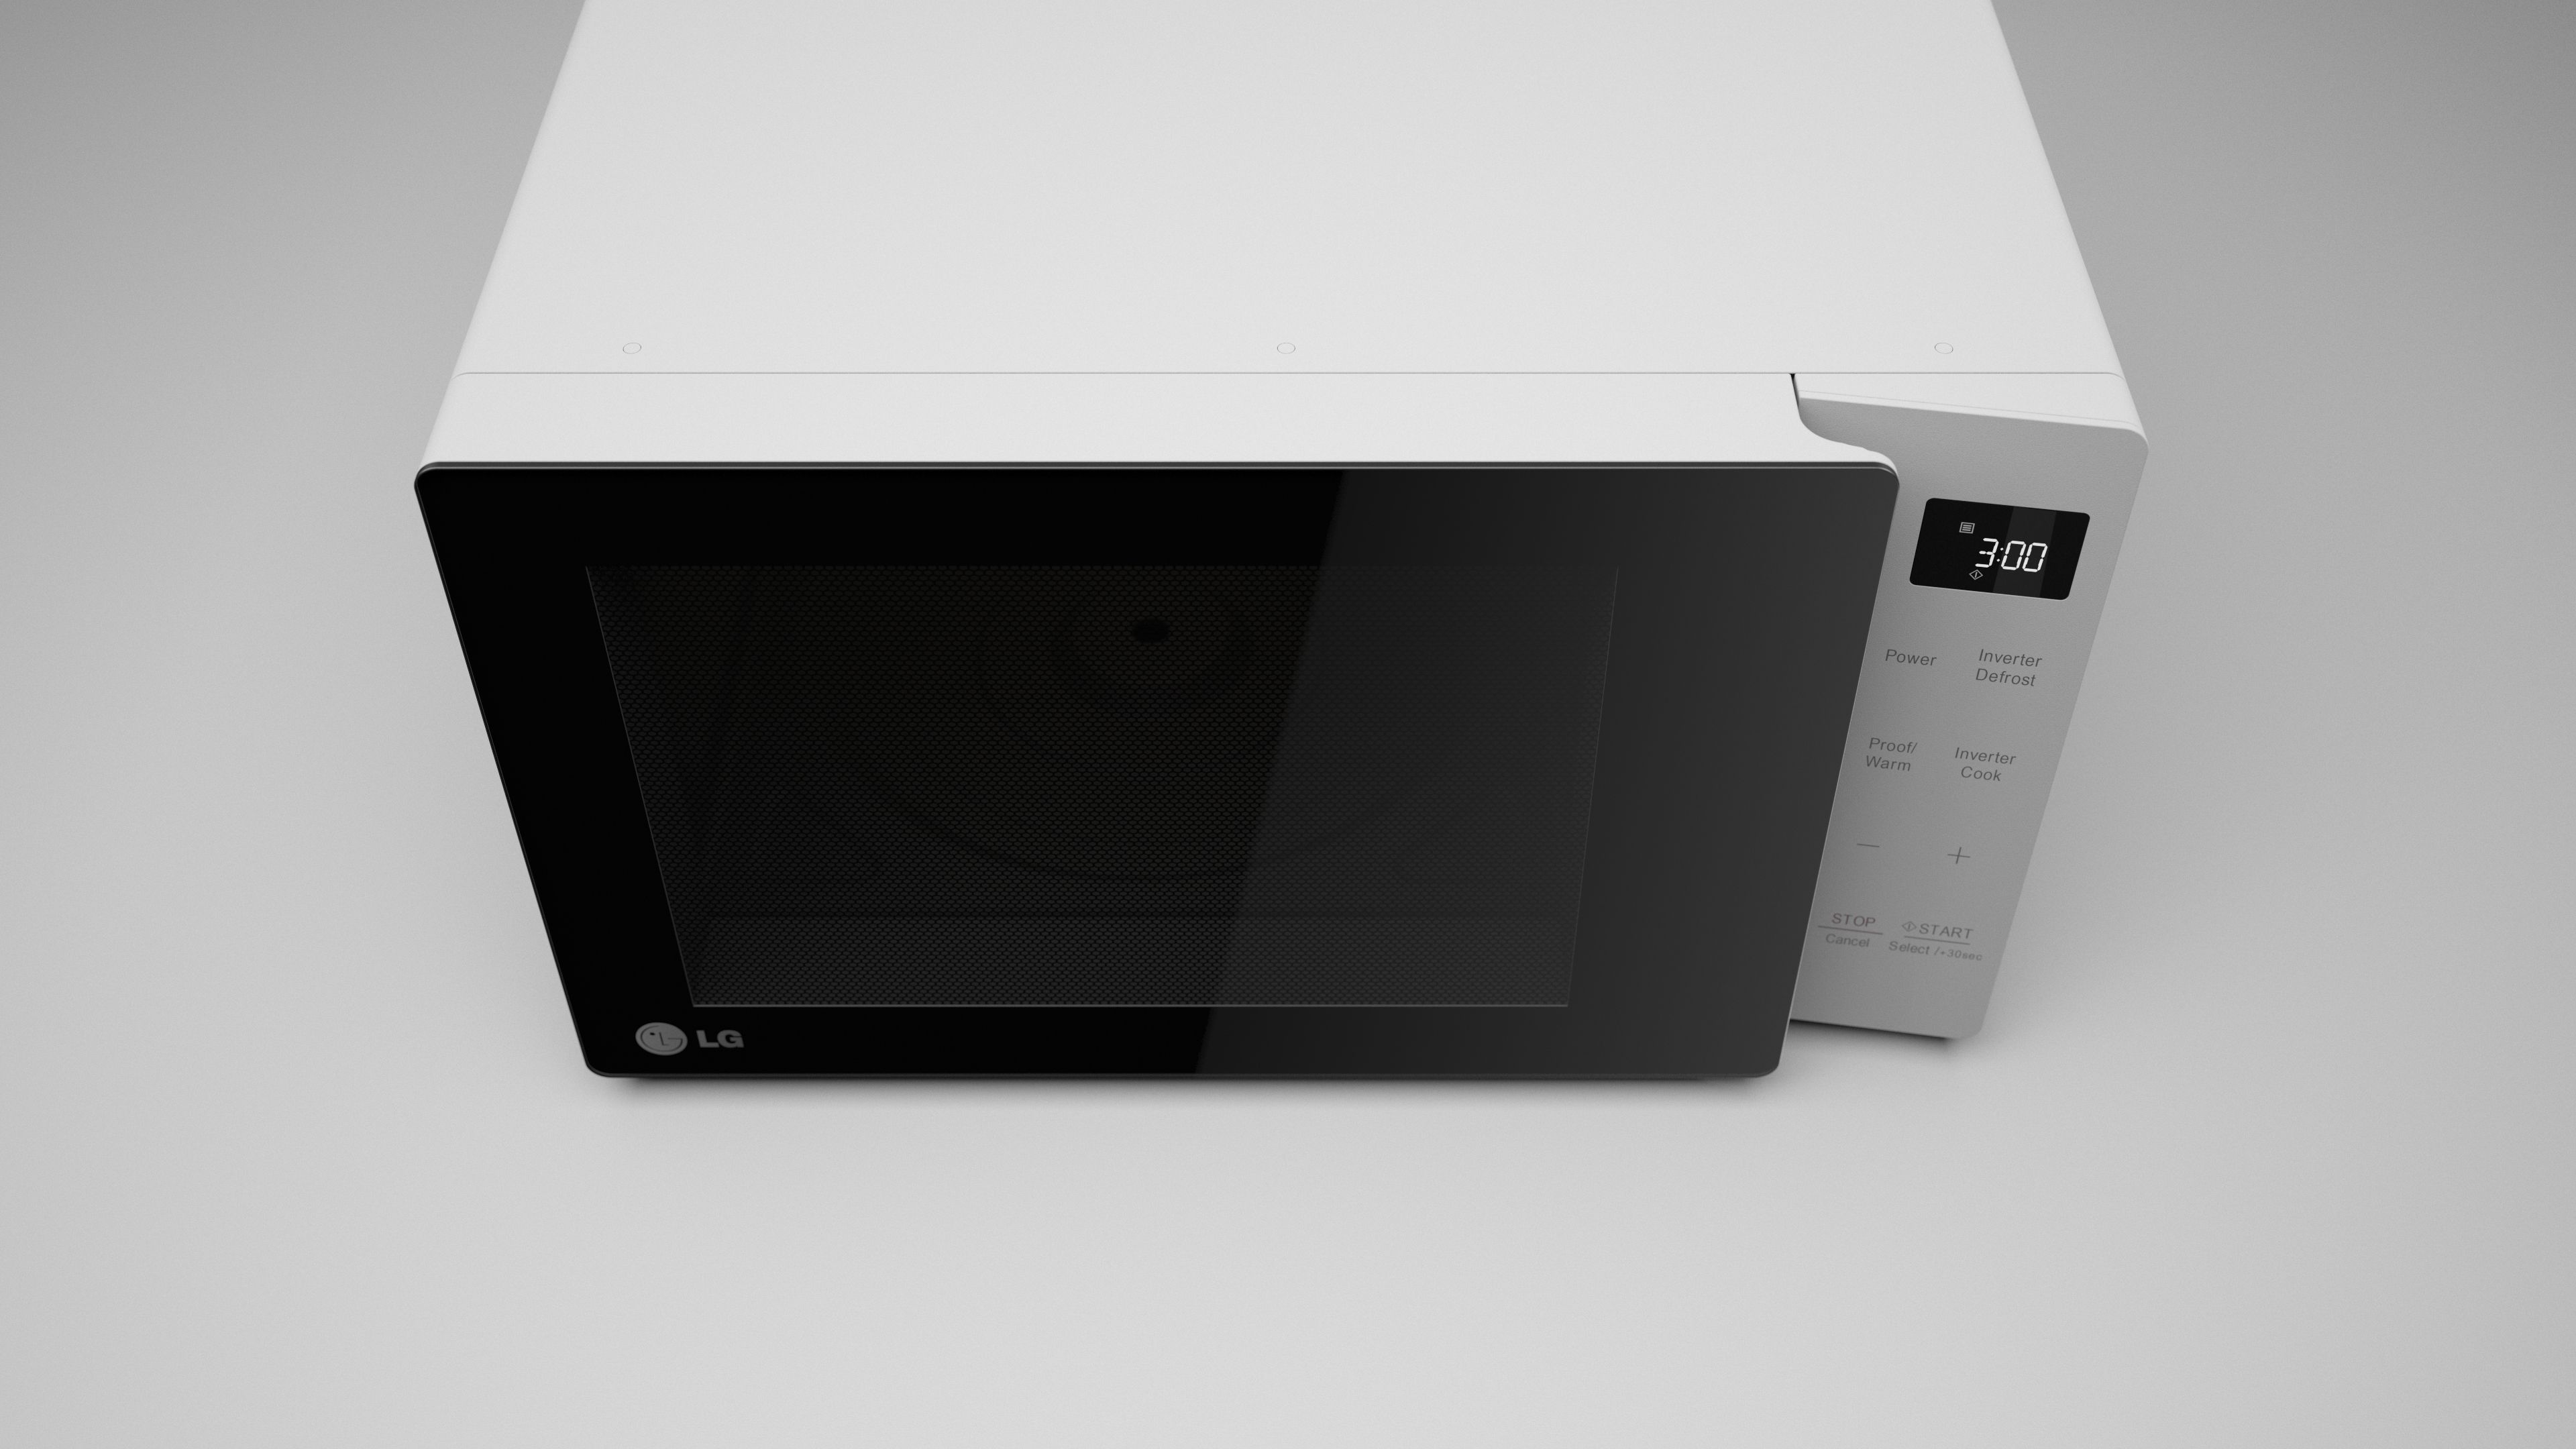 Lg Neochef Microwave Oven On Behance Microwave Oven Microwave